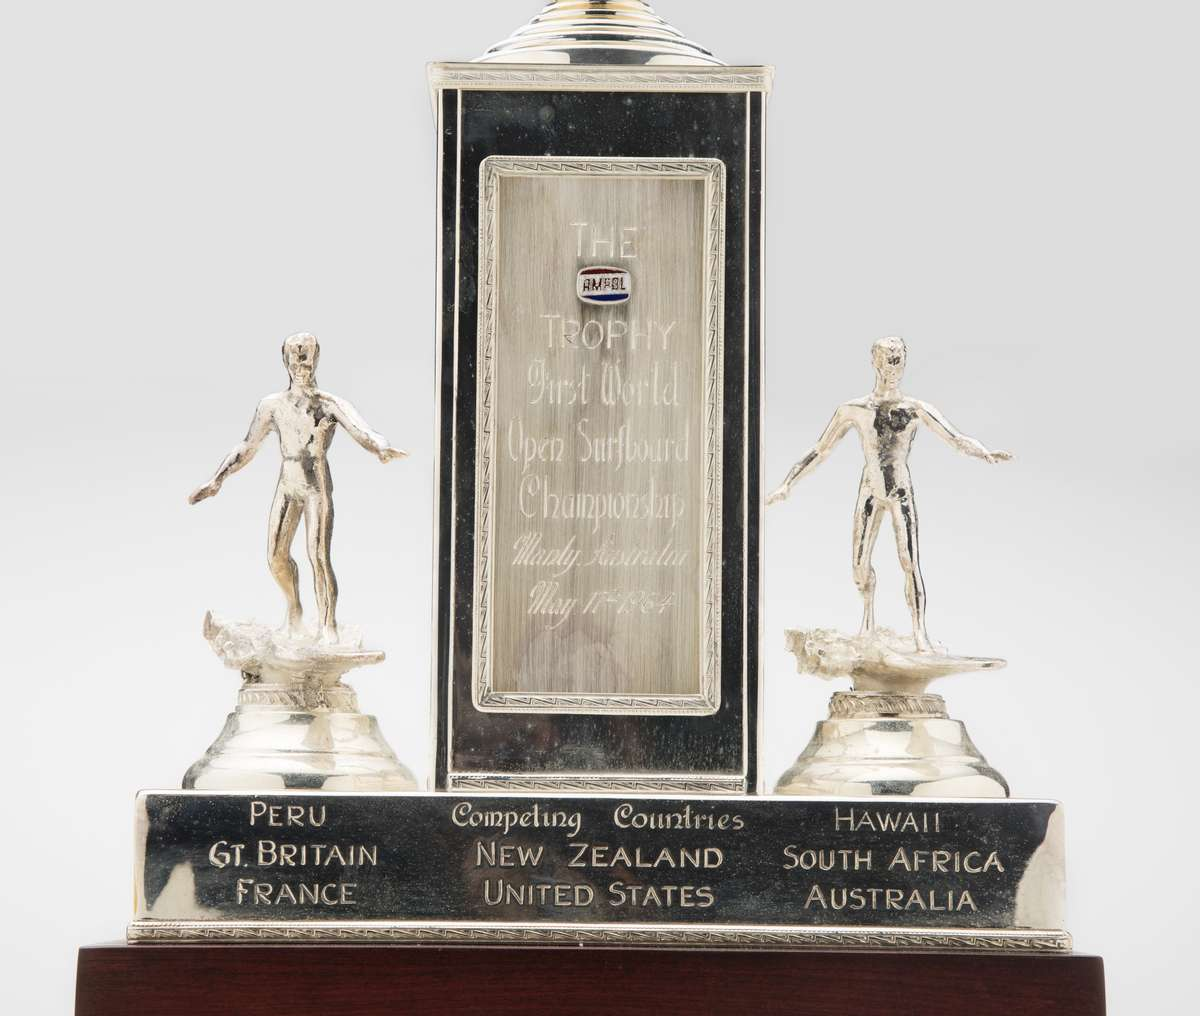 Ampol trophy for the first world open surfboard championship, Manly, Australia, maker unknown, silver plated base metal. Men's final won by Bernard 'Midget' Farrelly 17 May 1964. Gift from Bev Farrelly and family in memory of Bernard 'Midget' Farrelly. ANMM Collection 00054955.